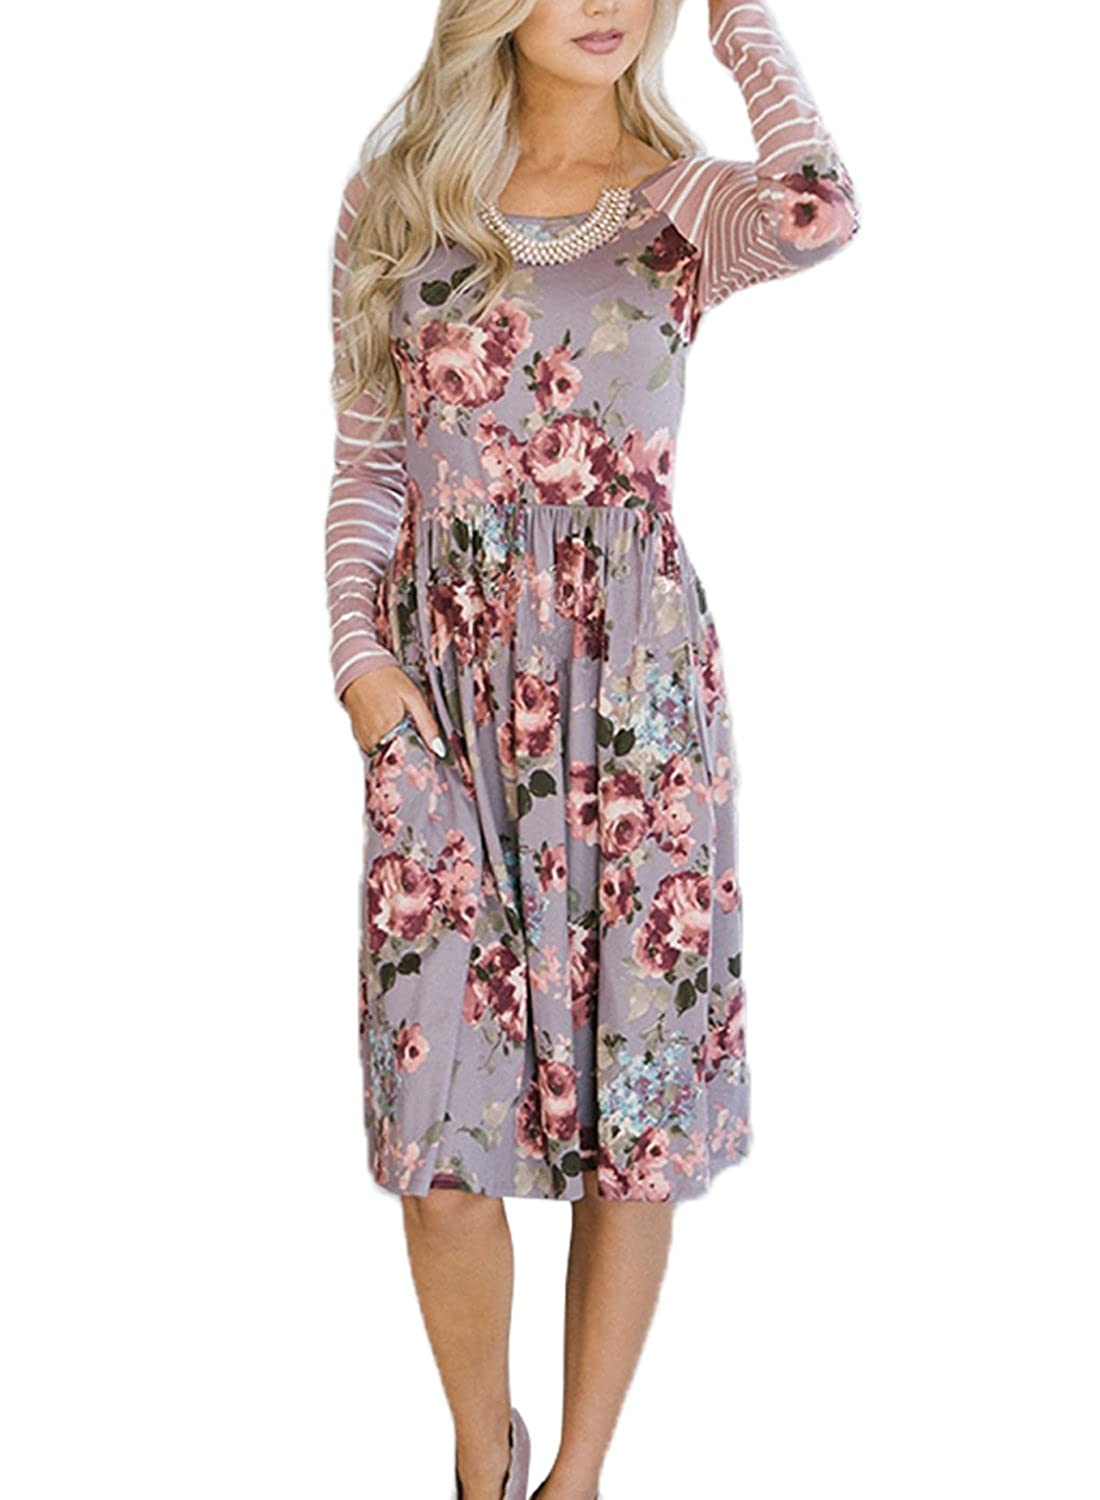 4bf0183678 Details about HOTAPEI Women s Floral Print Casual Short Sleeve A-line Loose  T-Shirt Dresses